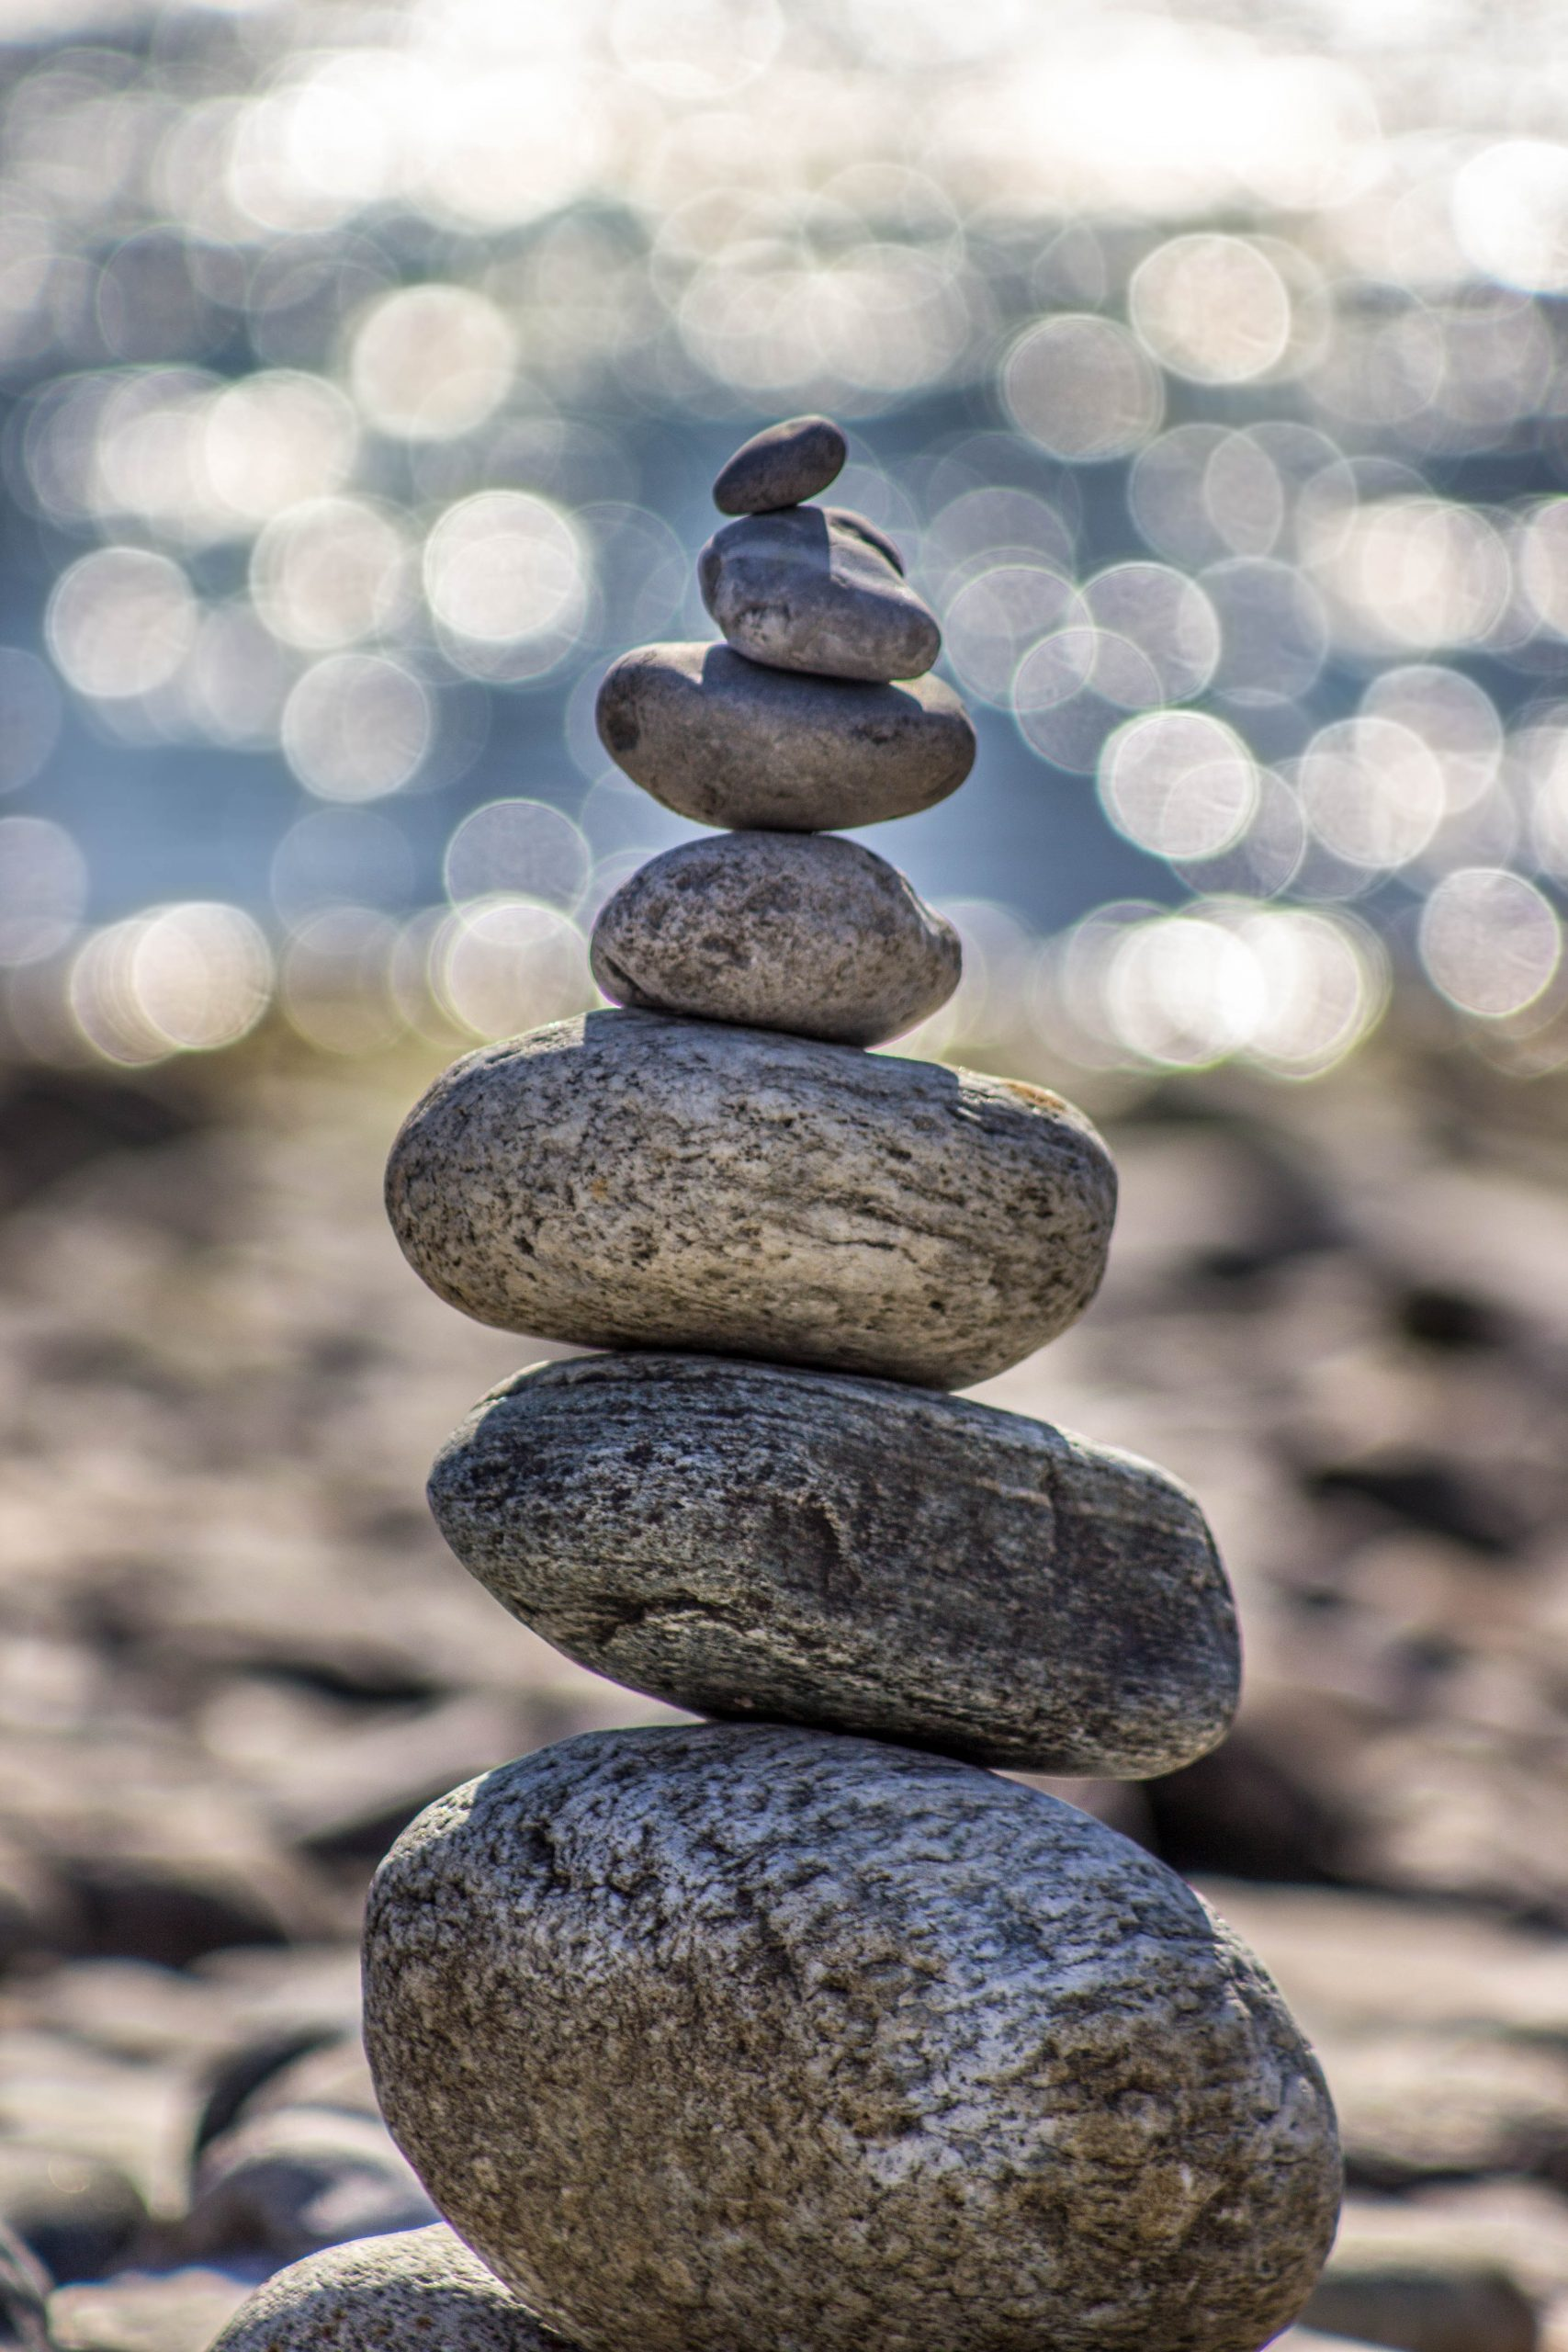 Stones balancing on one another with the sea shore in the background